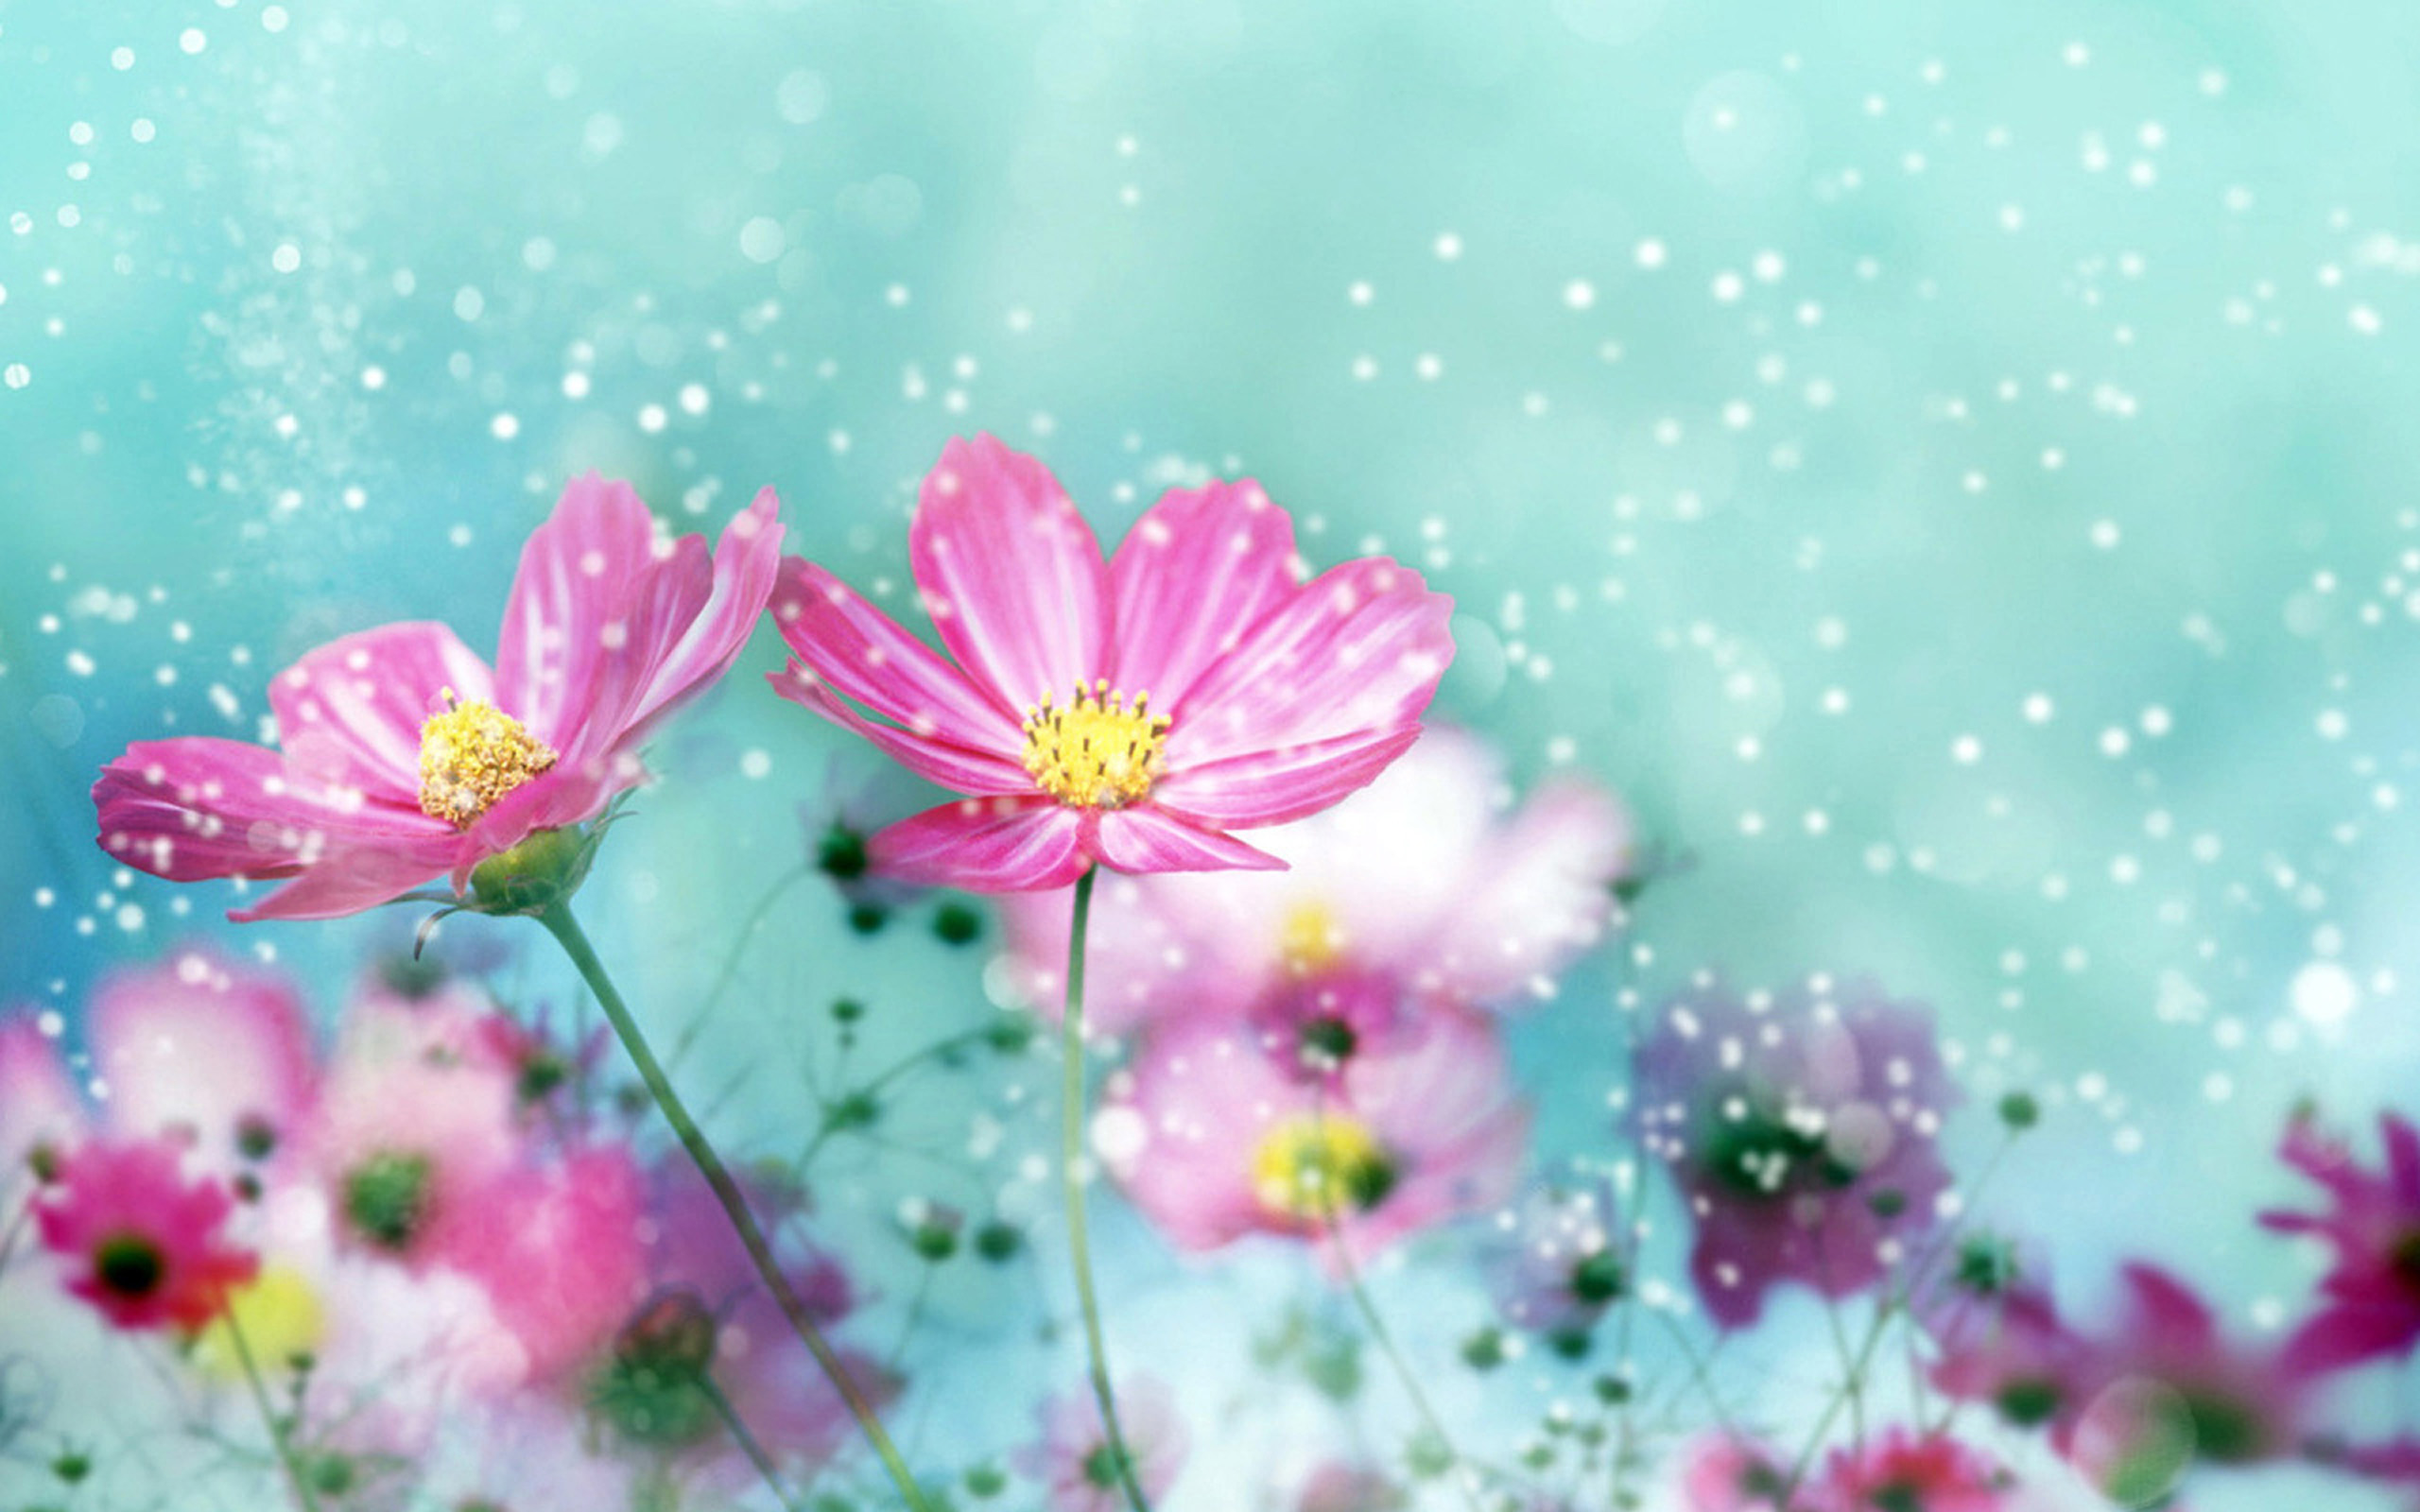 beautiful flowers wallpaper hd desktop 4512 wallpaper